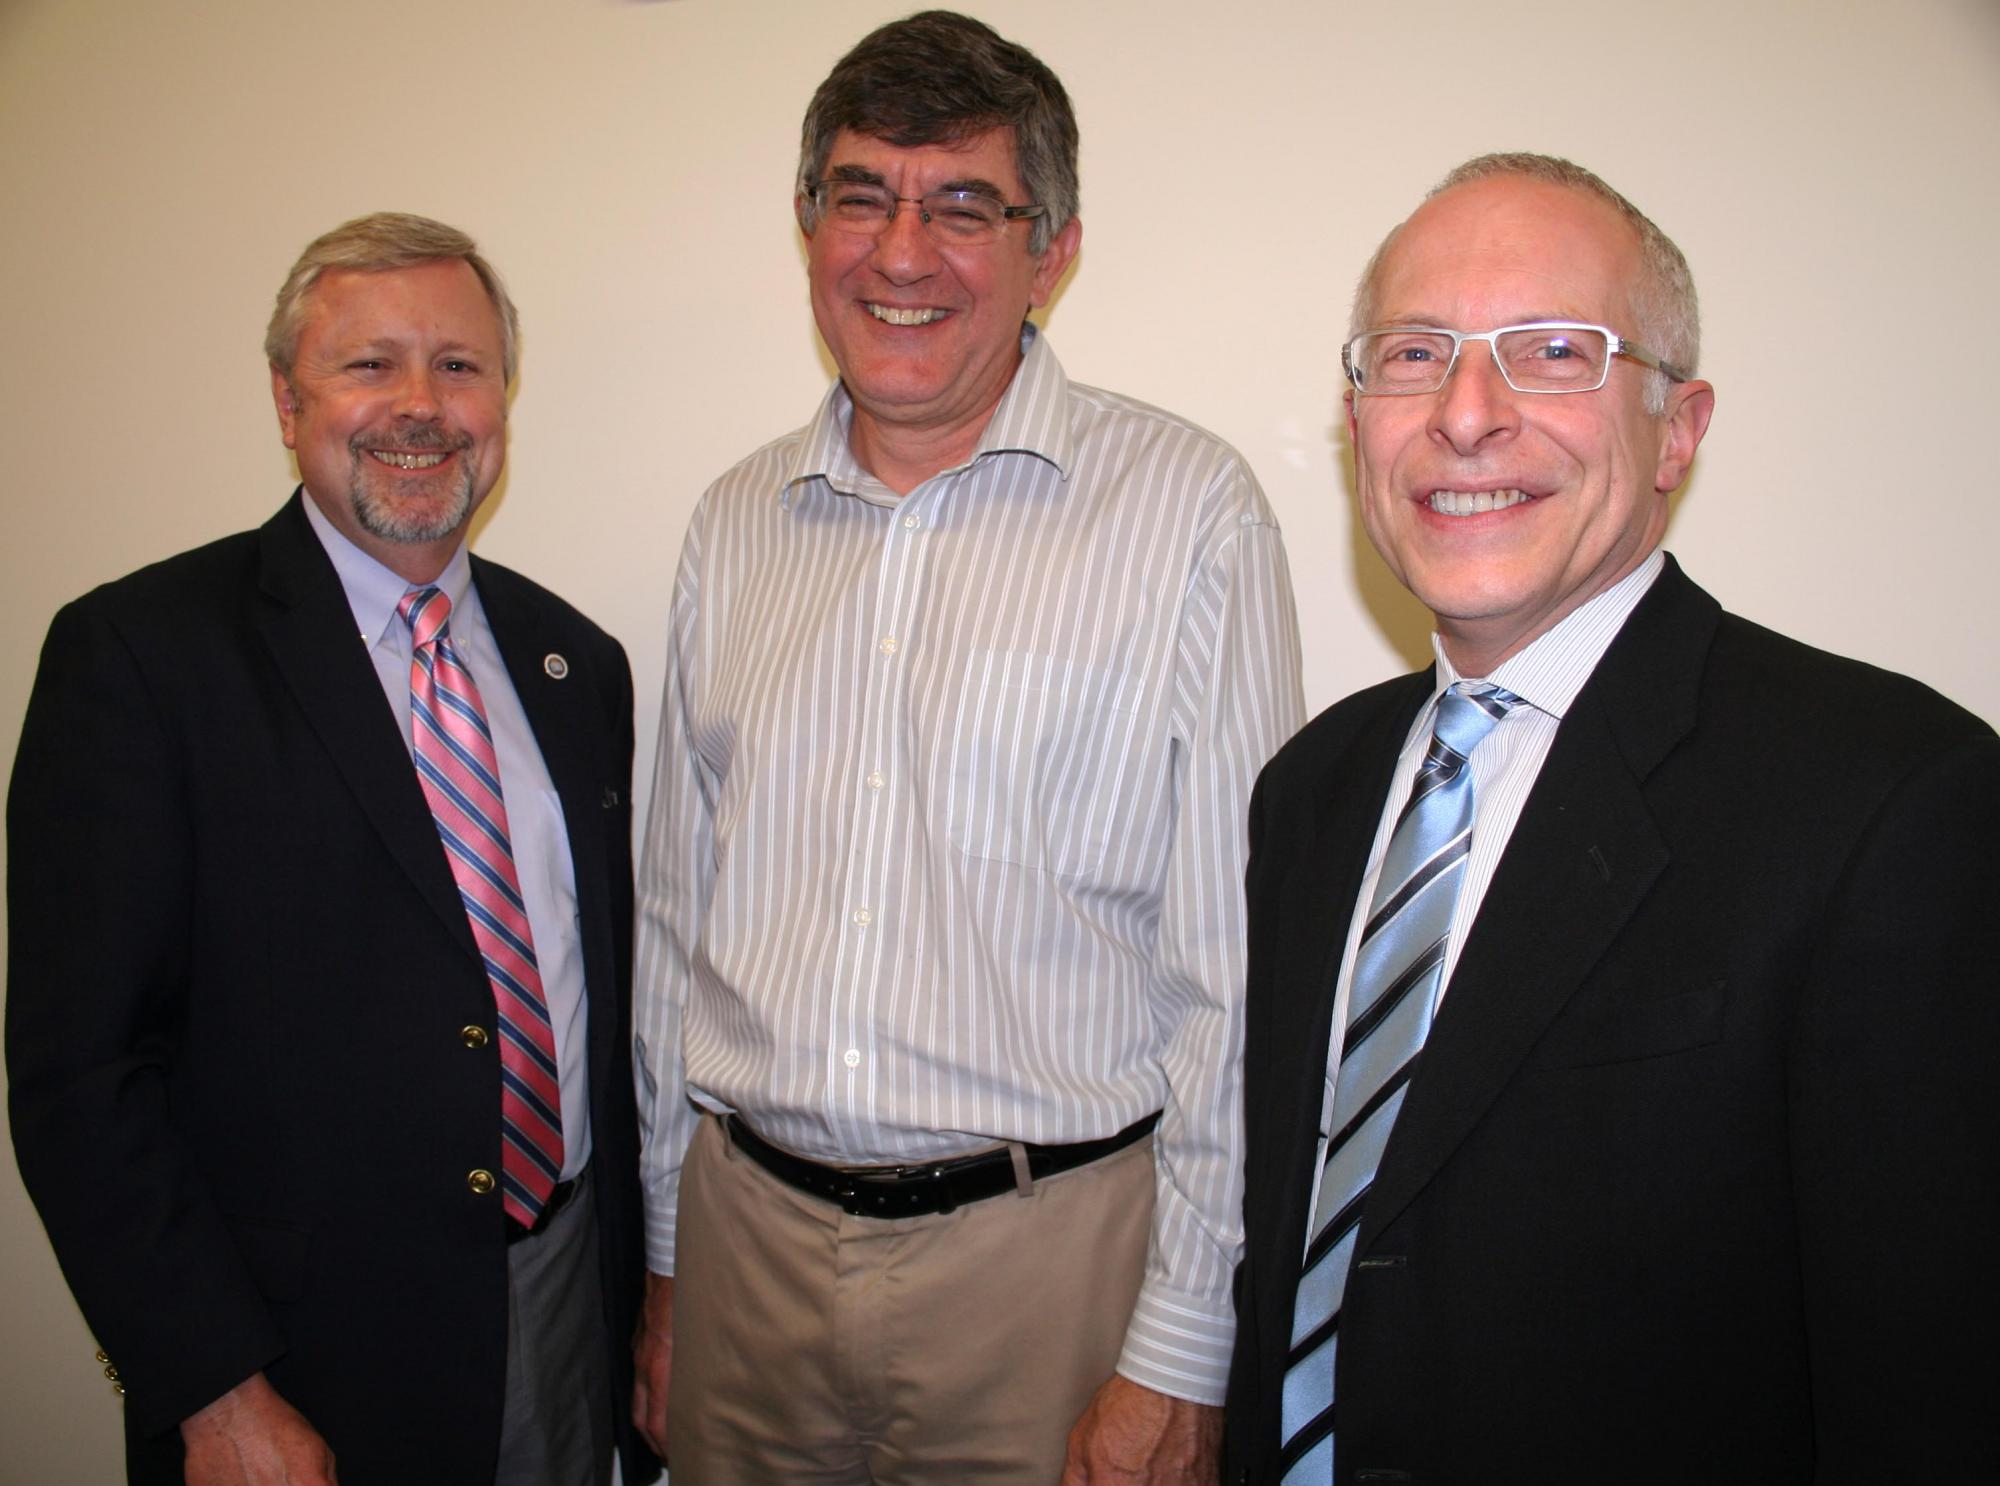 Vice President for Finance Pete Michell and Dean Wensley spoke with Gary Schilling (right) of BAR Architects, which designed the center.